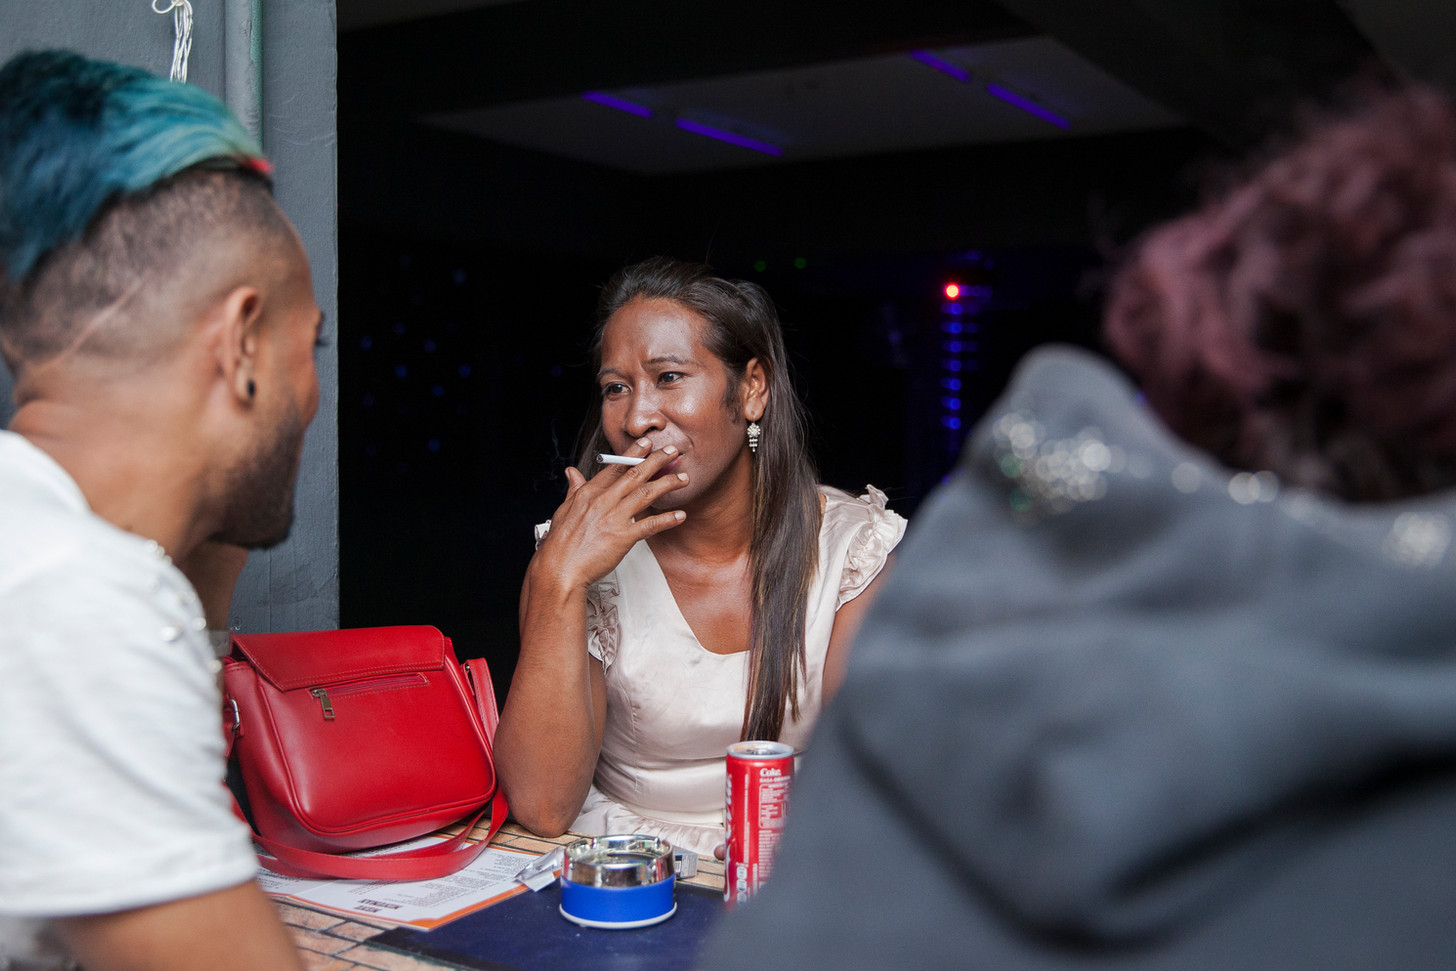 At the Colmera Shopping Center's nightclub, Romi Aty smokes a cigarette while having a conversation with a bartender. Growing up as transgender in a time where the LGBT movement wasn't established, it was challenging. In 2009, Aty became a sex worker, and even though she didn't do it for a long time, it was necessary to live an independent life.